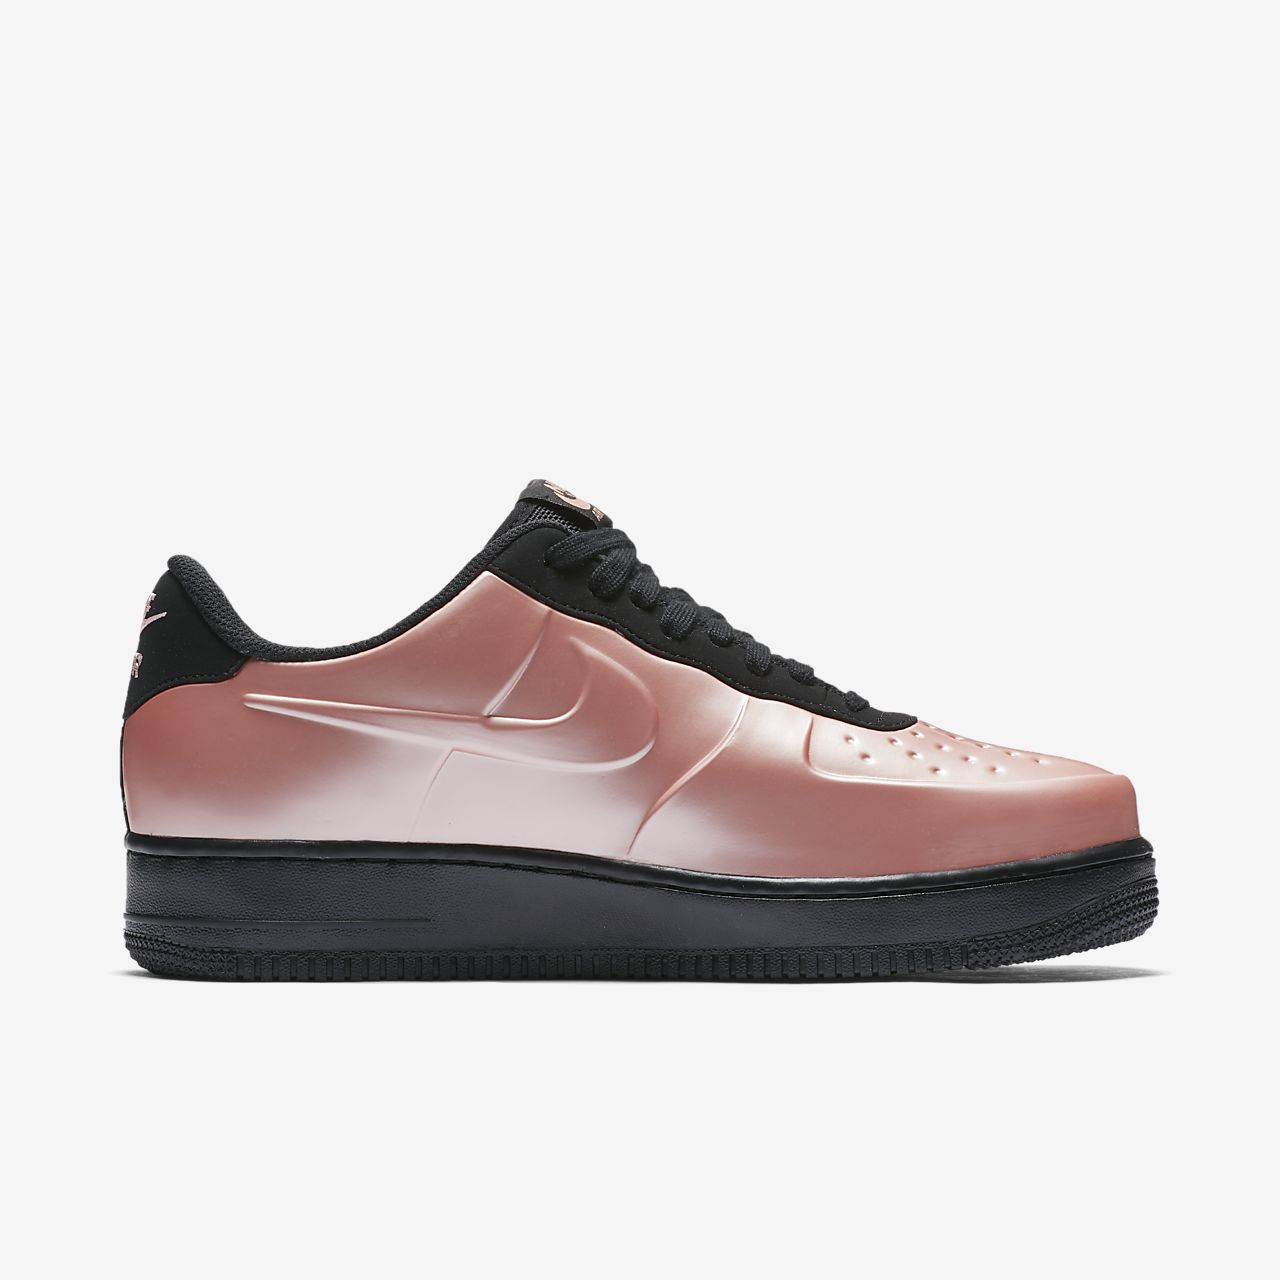 air force 1 gum sole men's nz